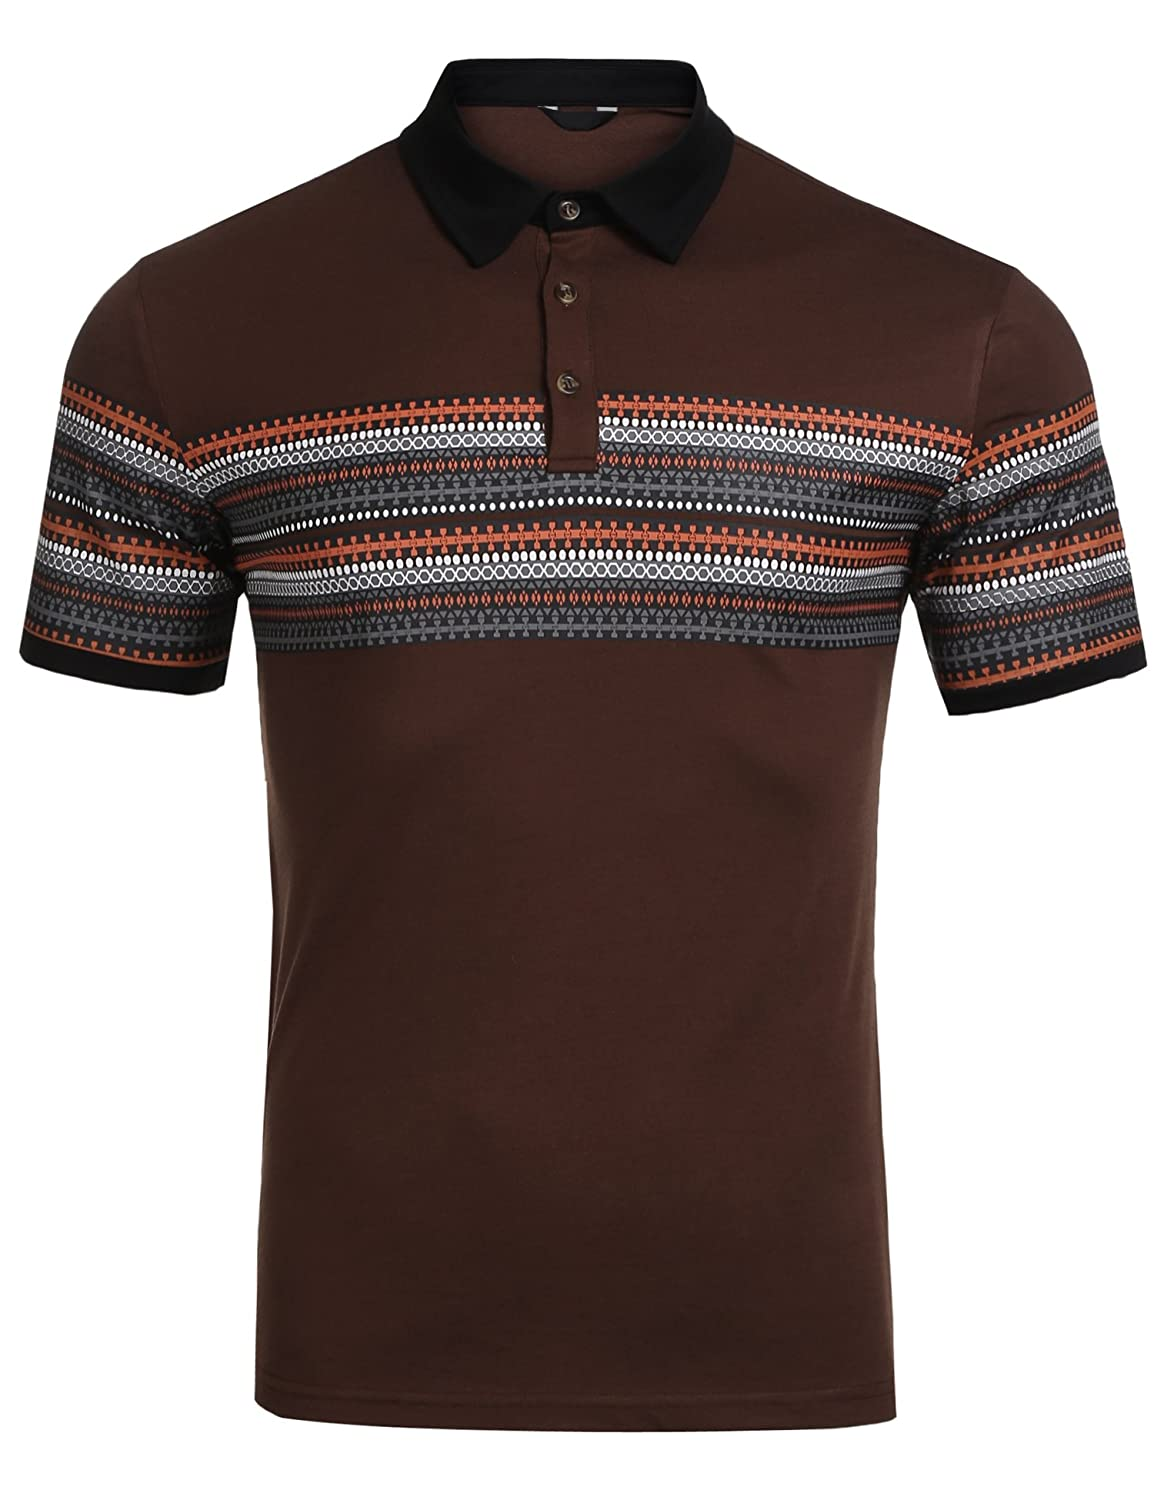 86316bb6901d Top 10 wholesale Business Polo Shirt Design - Chinabrands.com